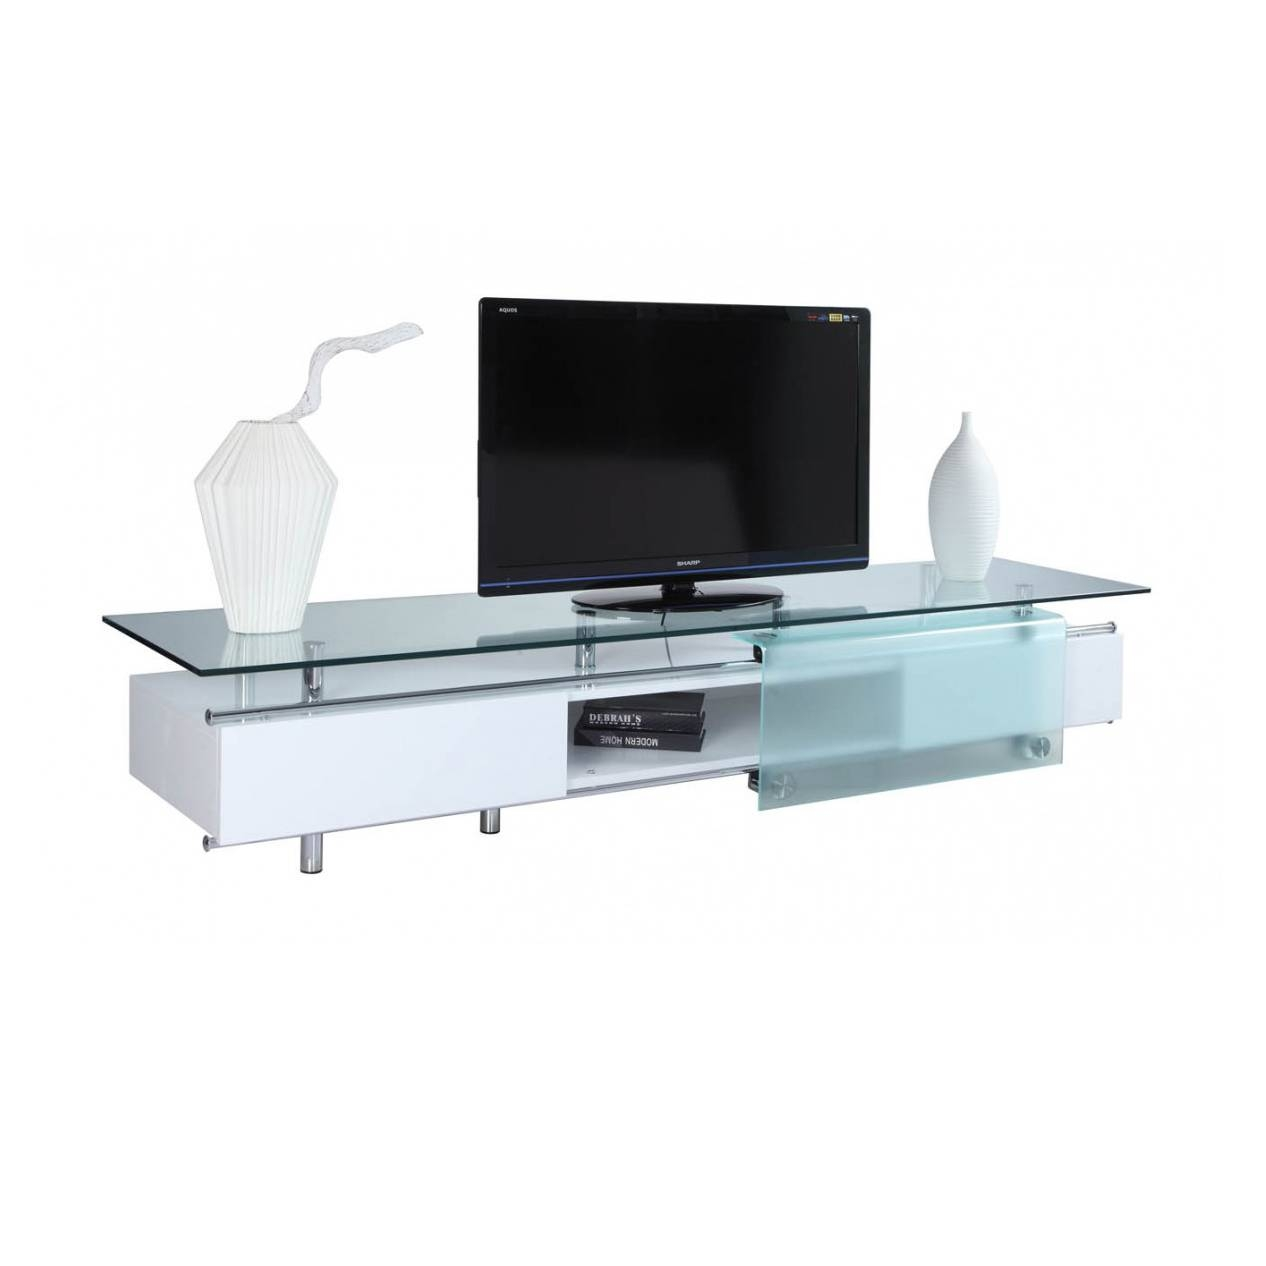 Ema High Gloss White Tv Stand, White Line Imports - Modern Manhattan within Modern Glass Tv Stands (Image 3 of 15)